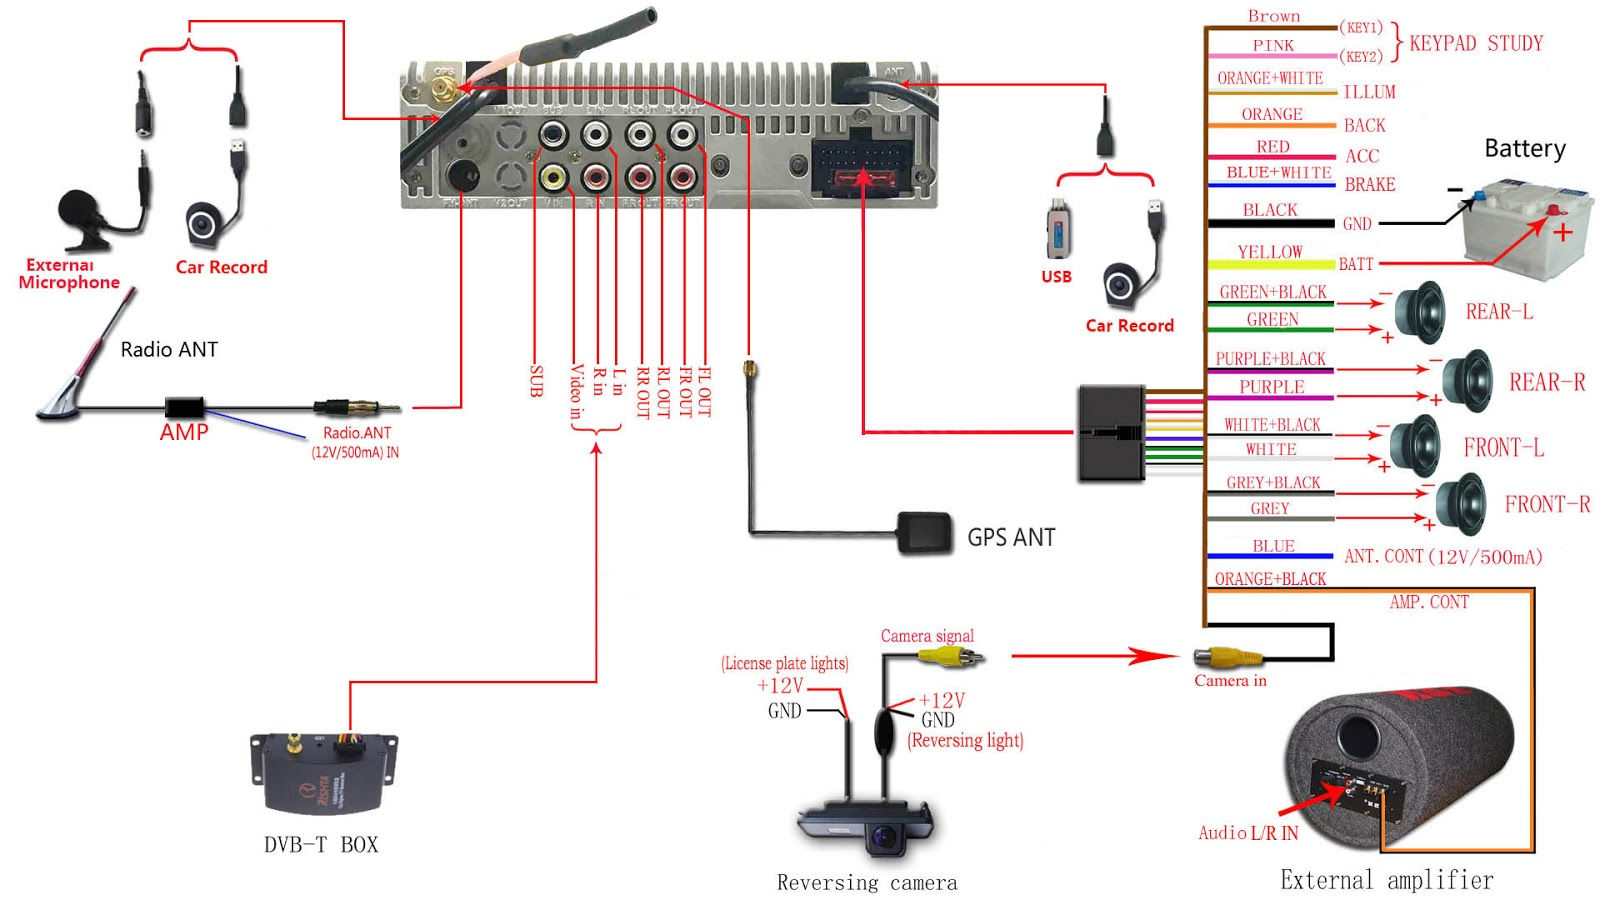 wiring%2Bdiagram%2Bof%2BJOYING%2Bsingle%2Bdin%2Bhead%2Bunit joying single din car stereo installed on jeep dodge car joying single din wiring harness gm 98 at webbmarketing.co